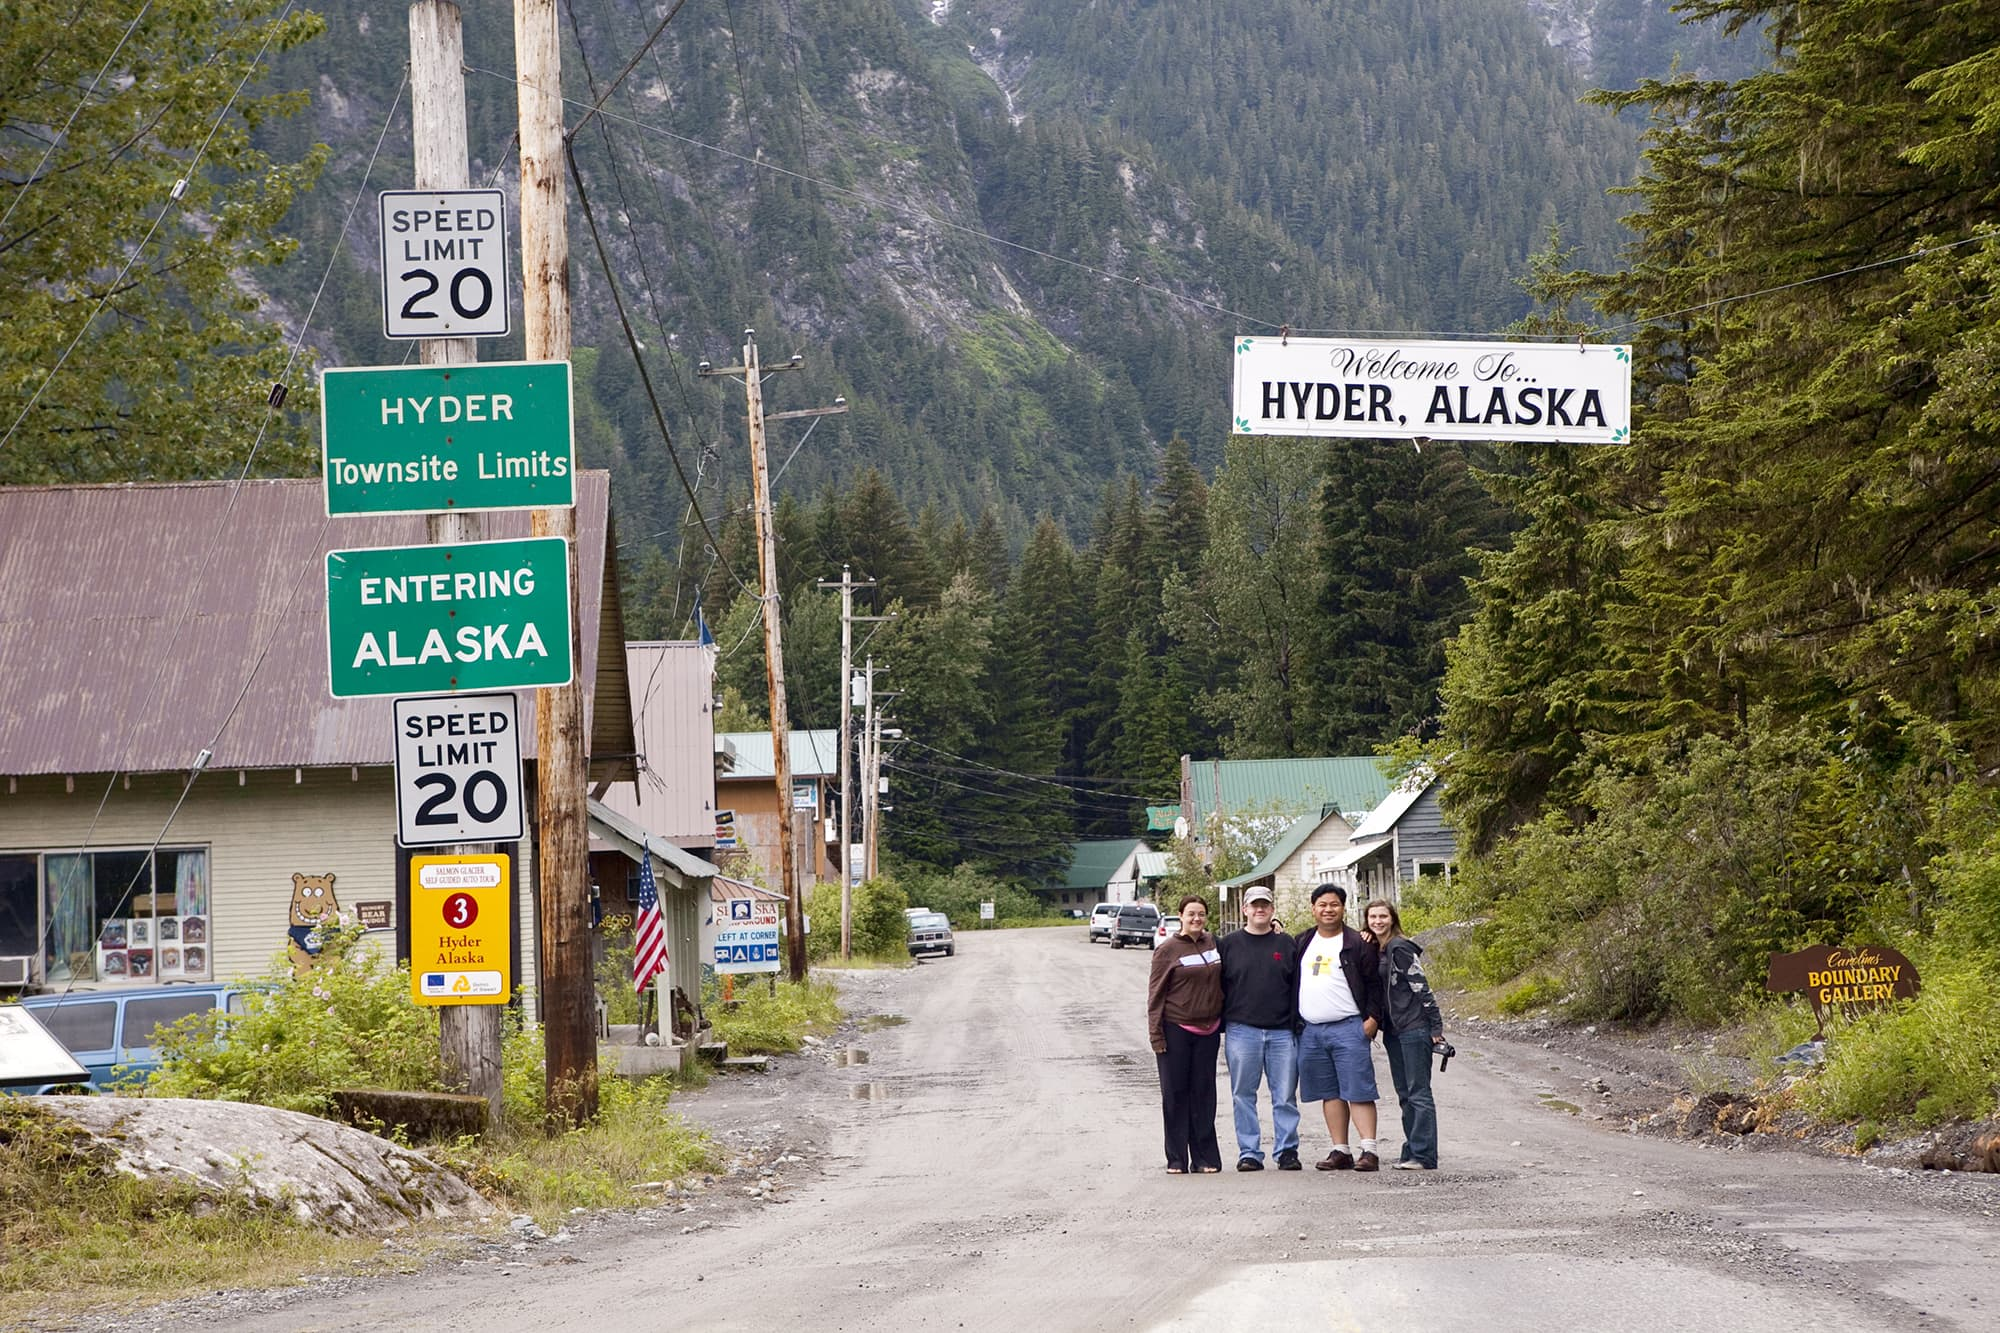 Welcome to Hyder, Alaska - Things to do in Hyder, Alaska.